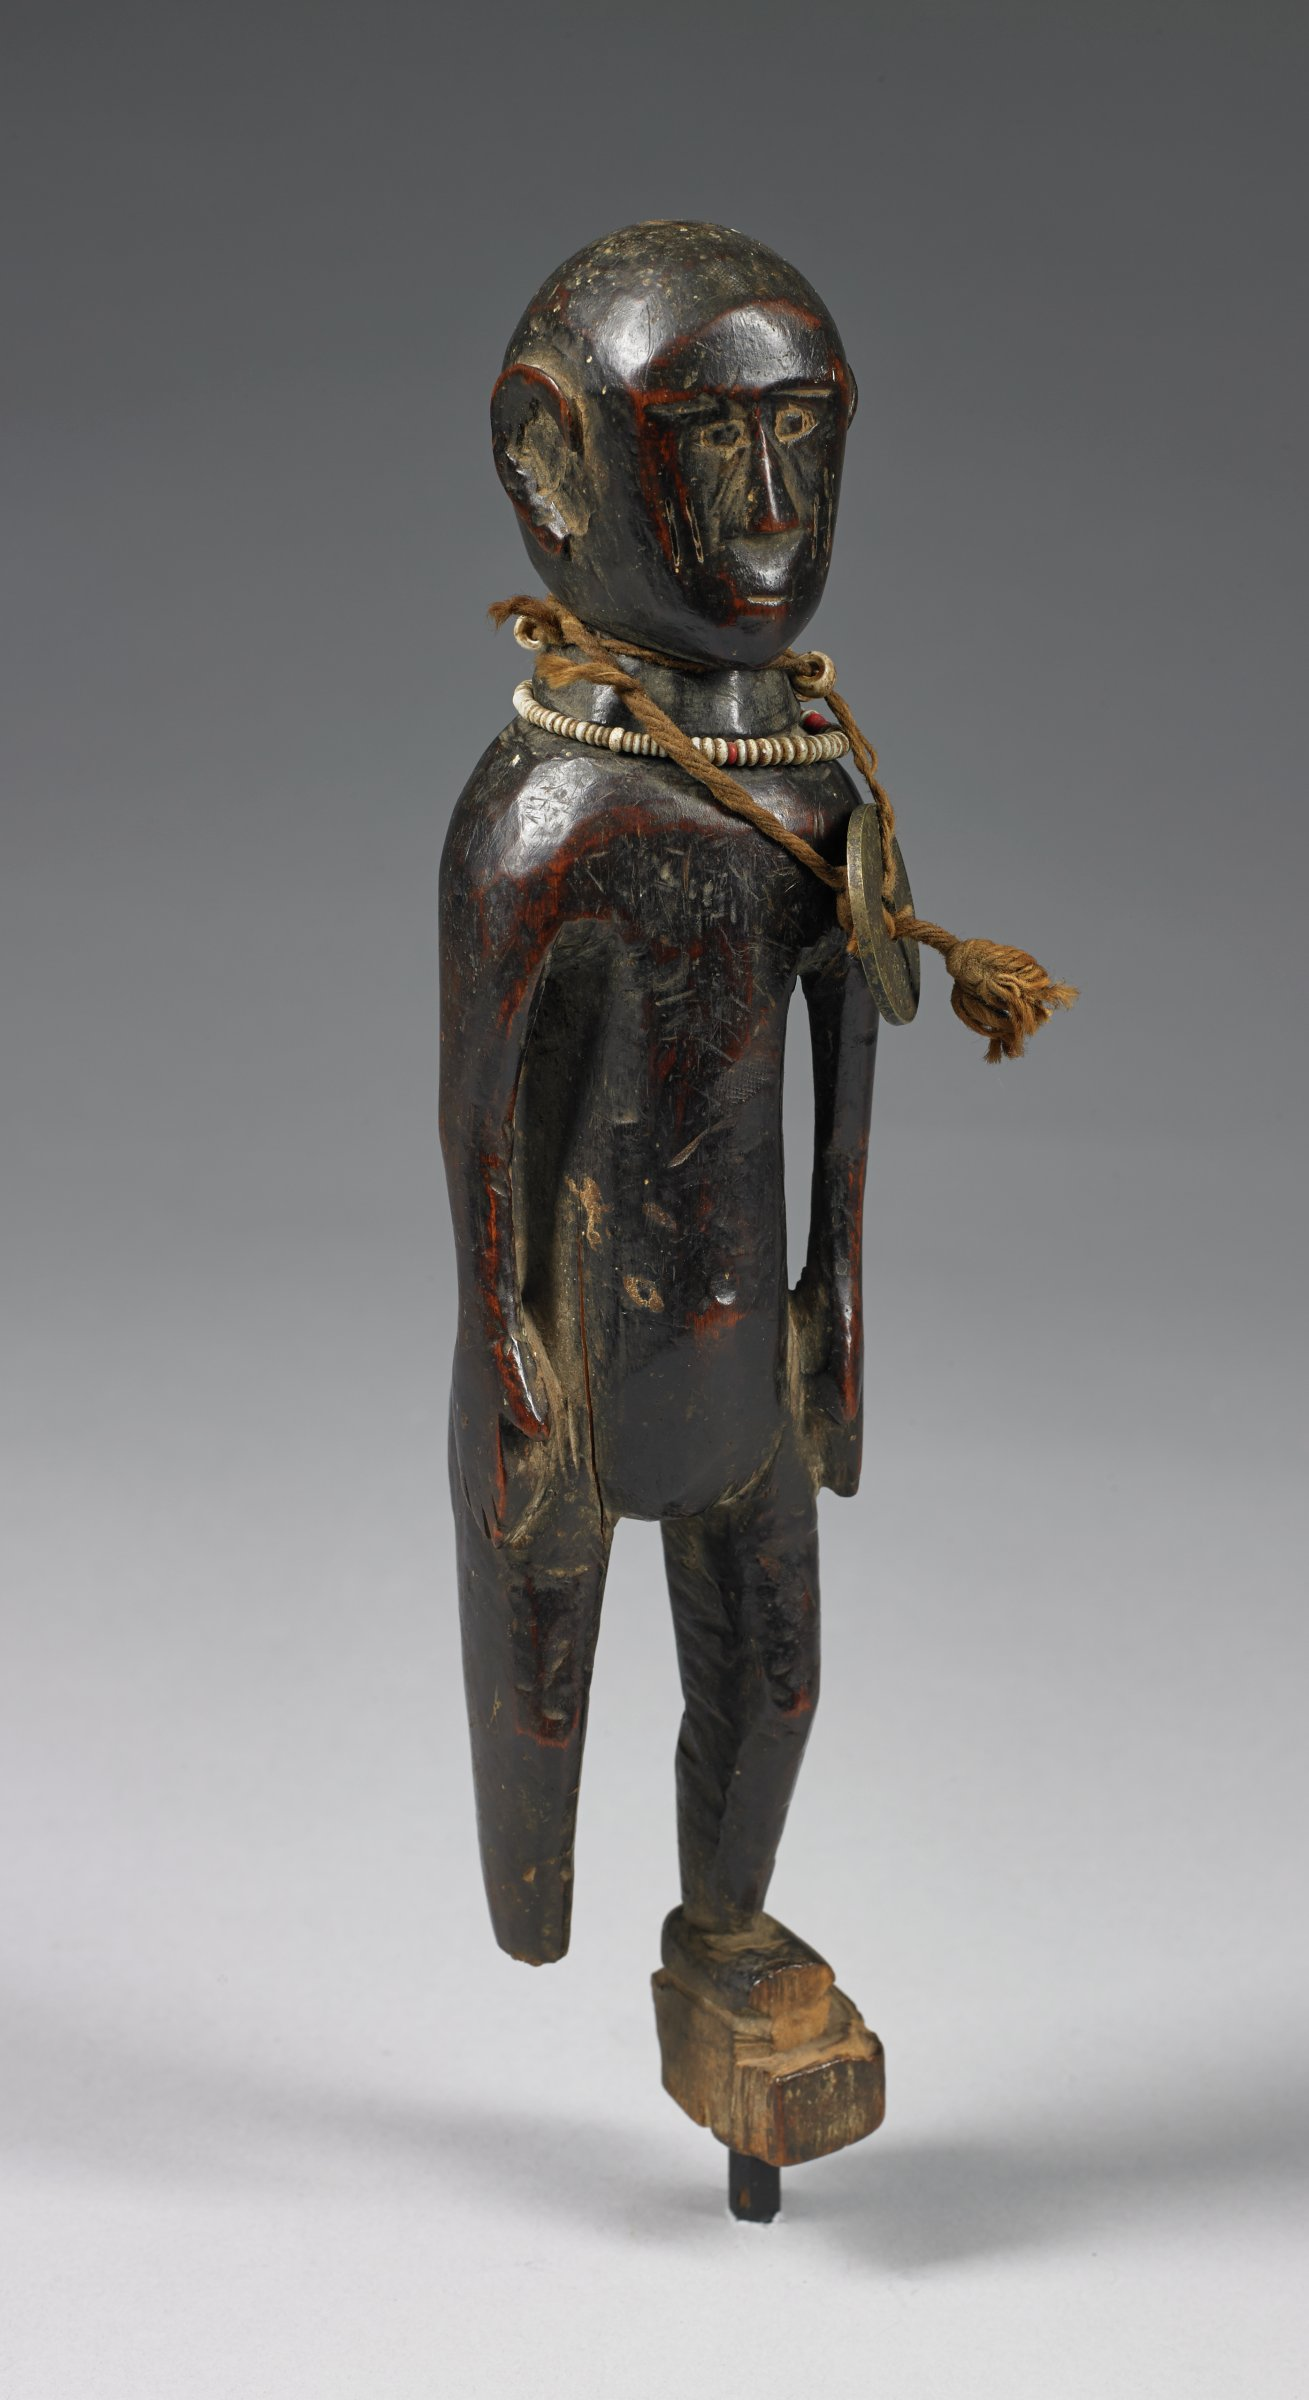 Standing Figure, Temne people, African, wood, glass beads, British West Africa halfpenny coin and cord